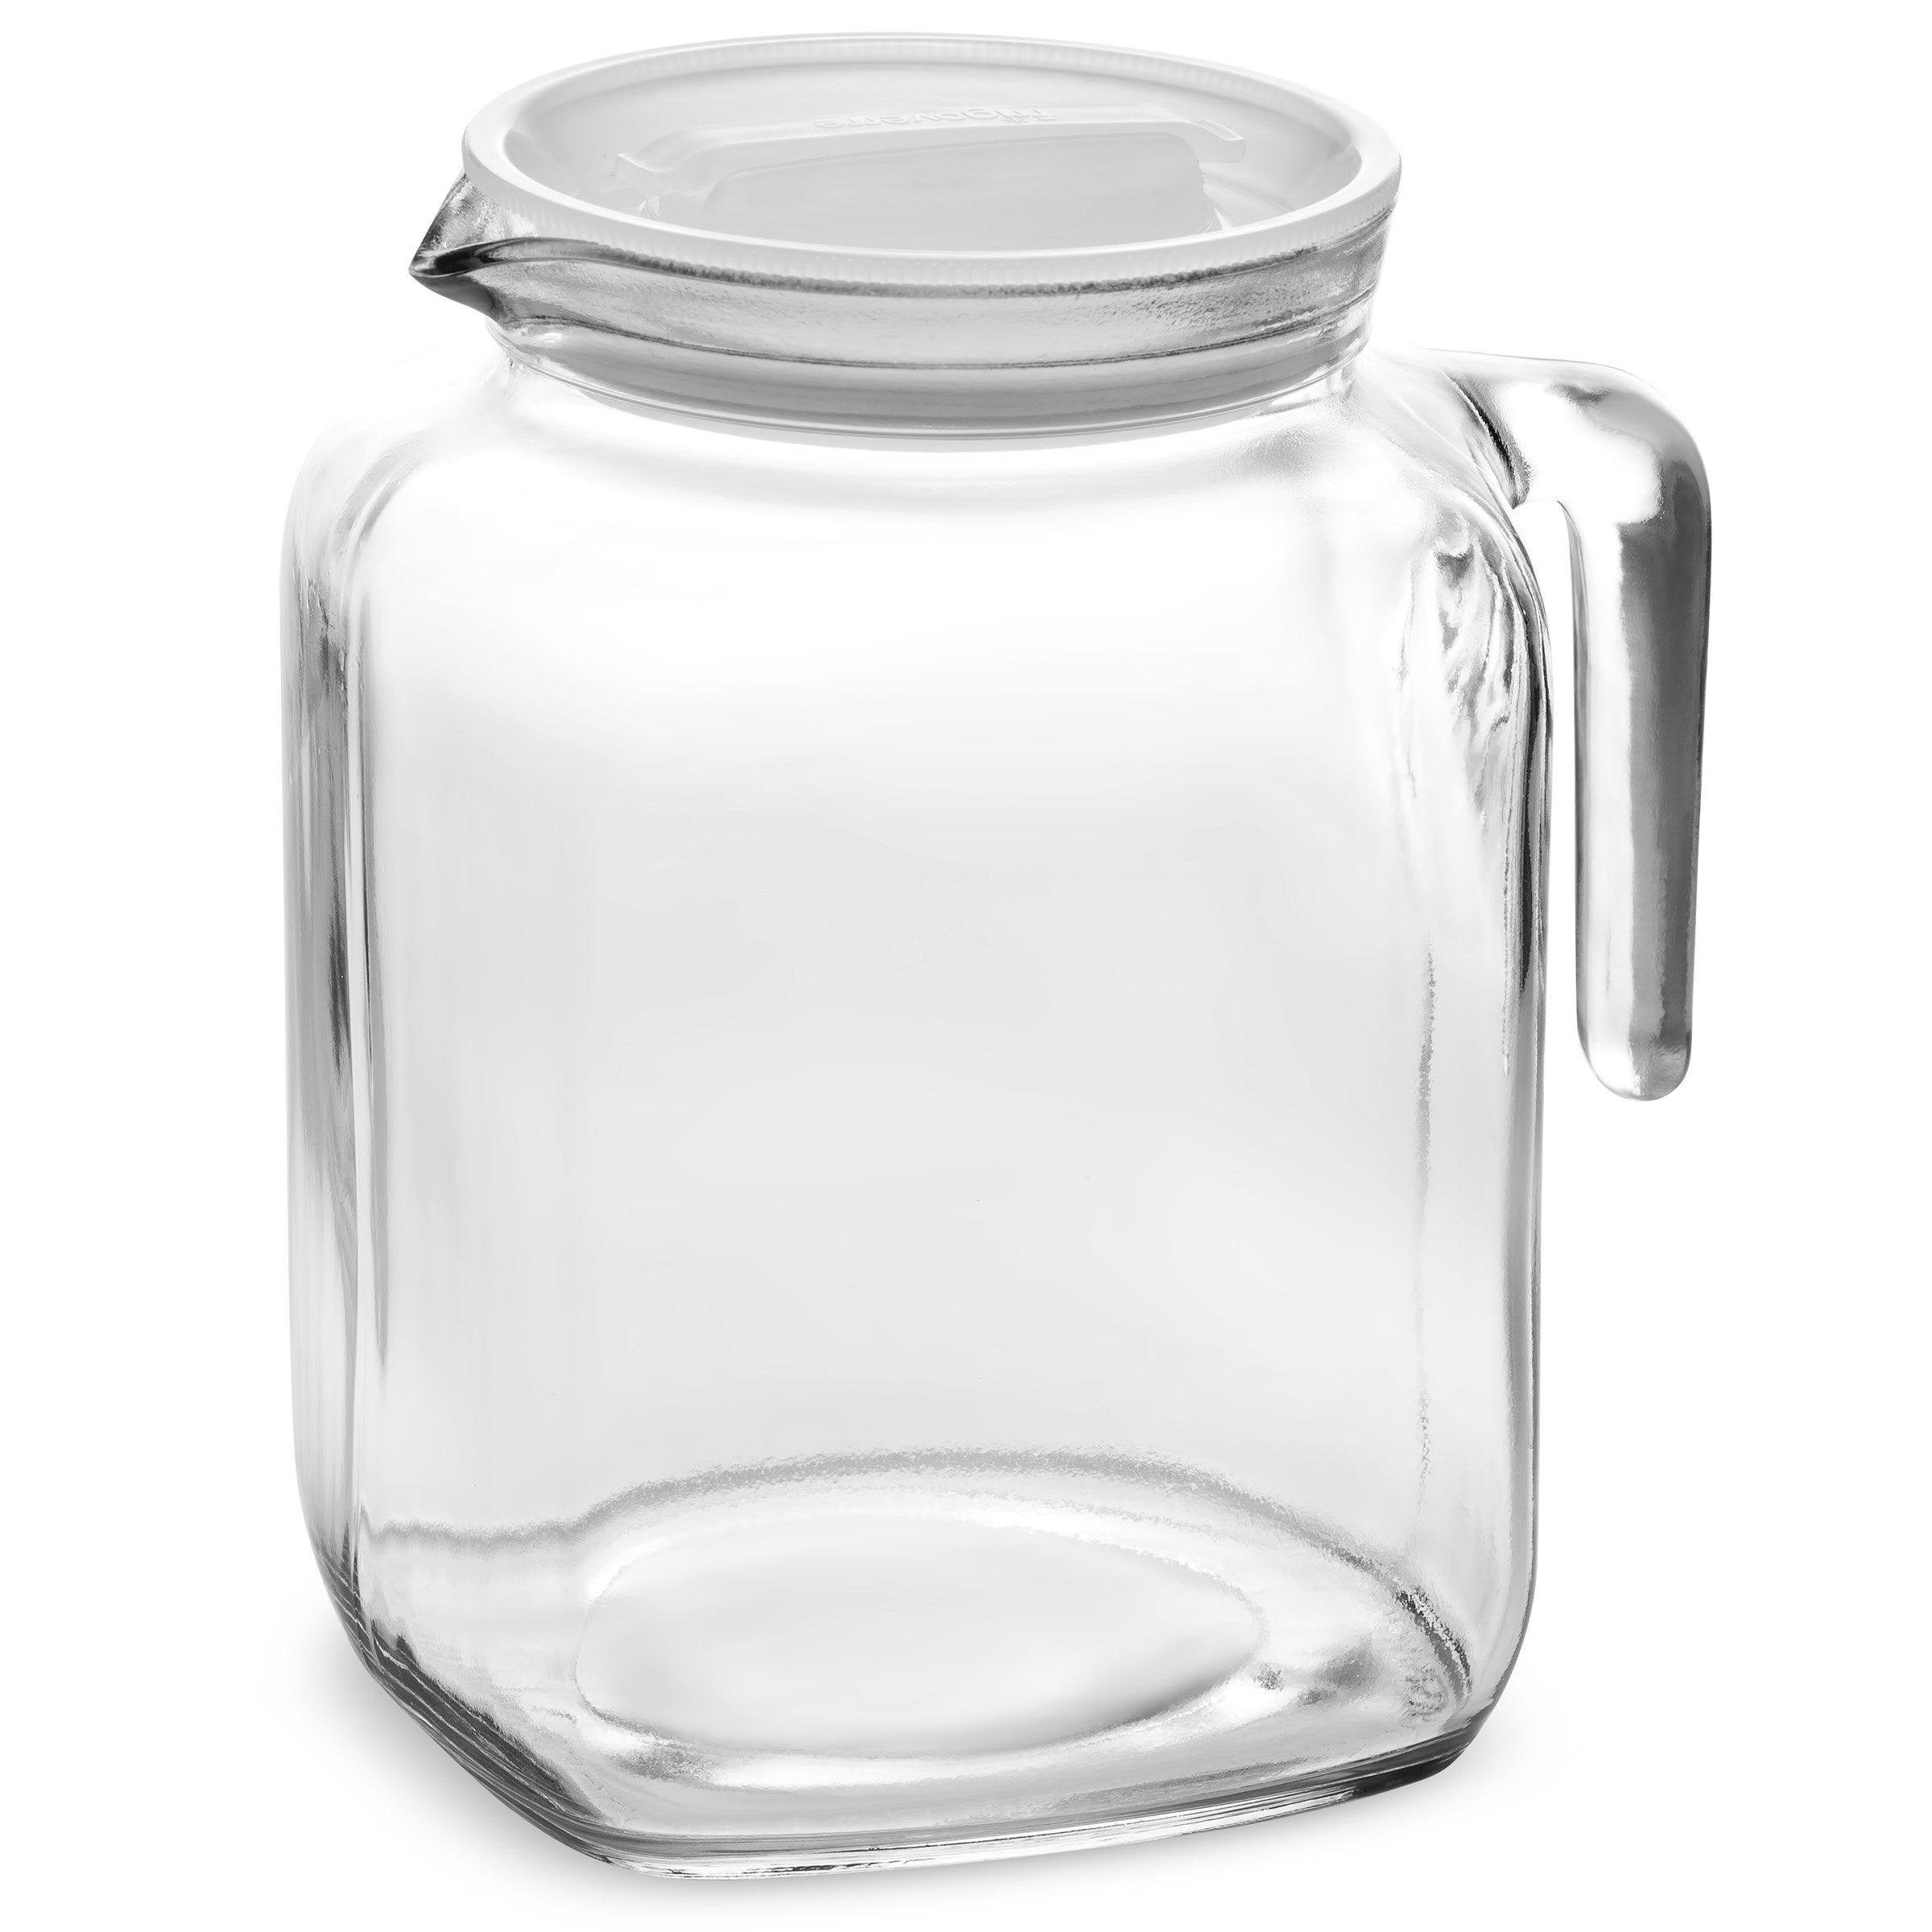 Bormioli Rocco Hermetic Seal Glass Pitcher With Lid and Spout [68 Ounce] Great for Homemade Juice & Iced Tea or for Glass Milk Bottles by Bormioli Rocco (Image #2)